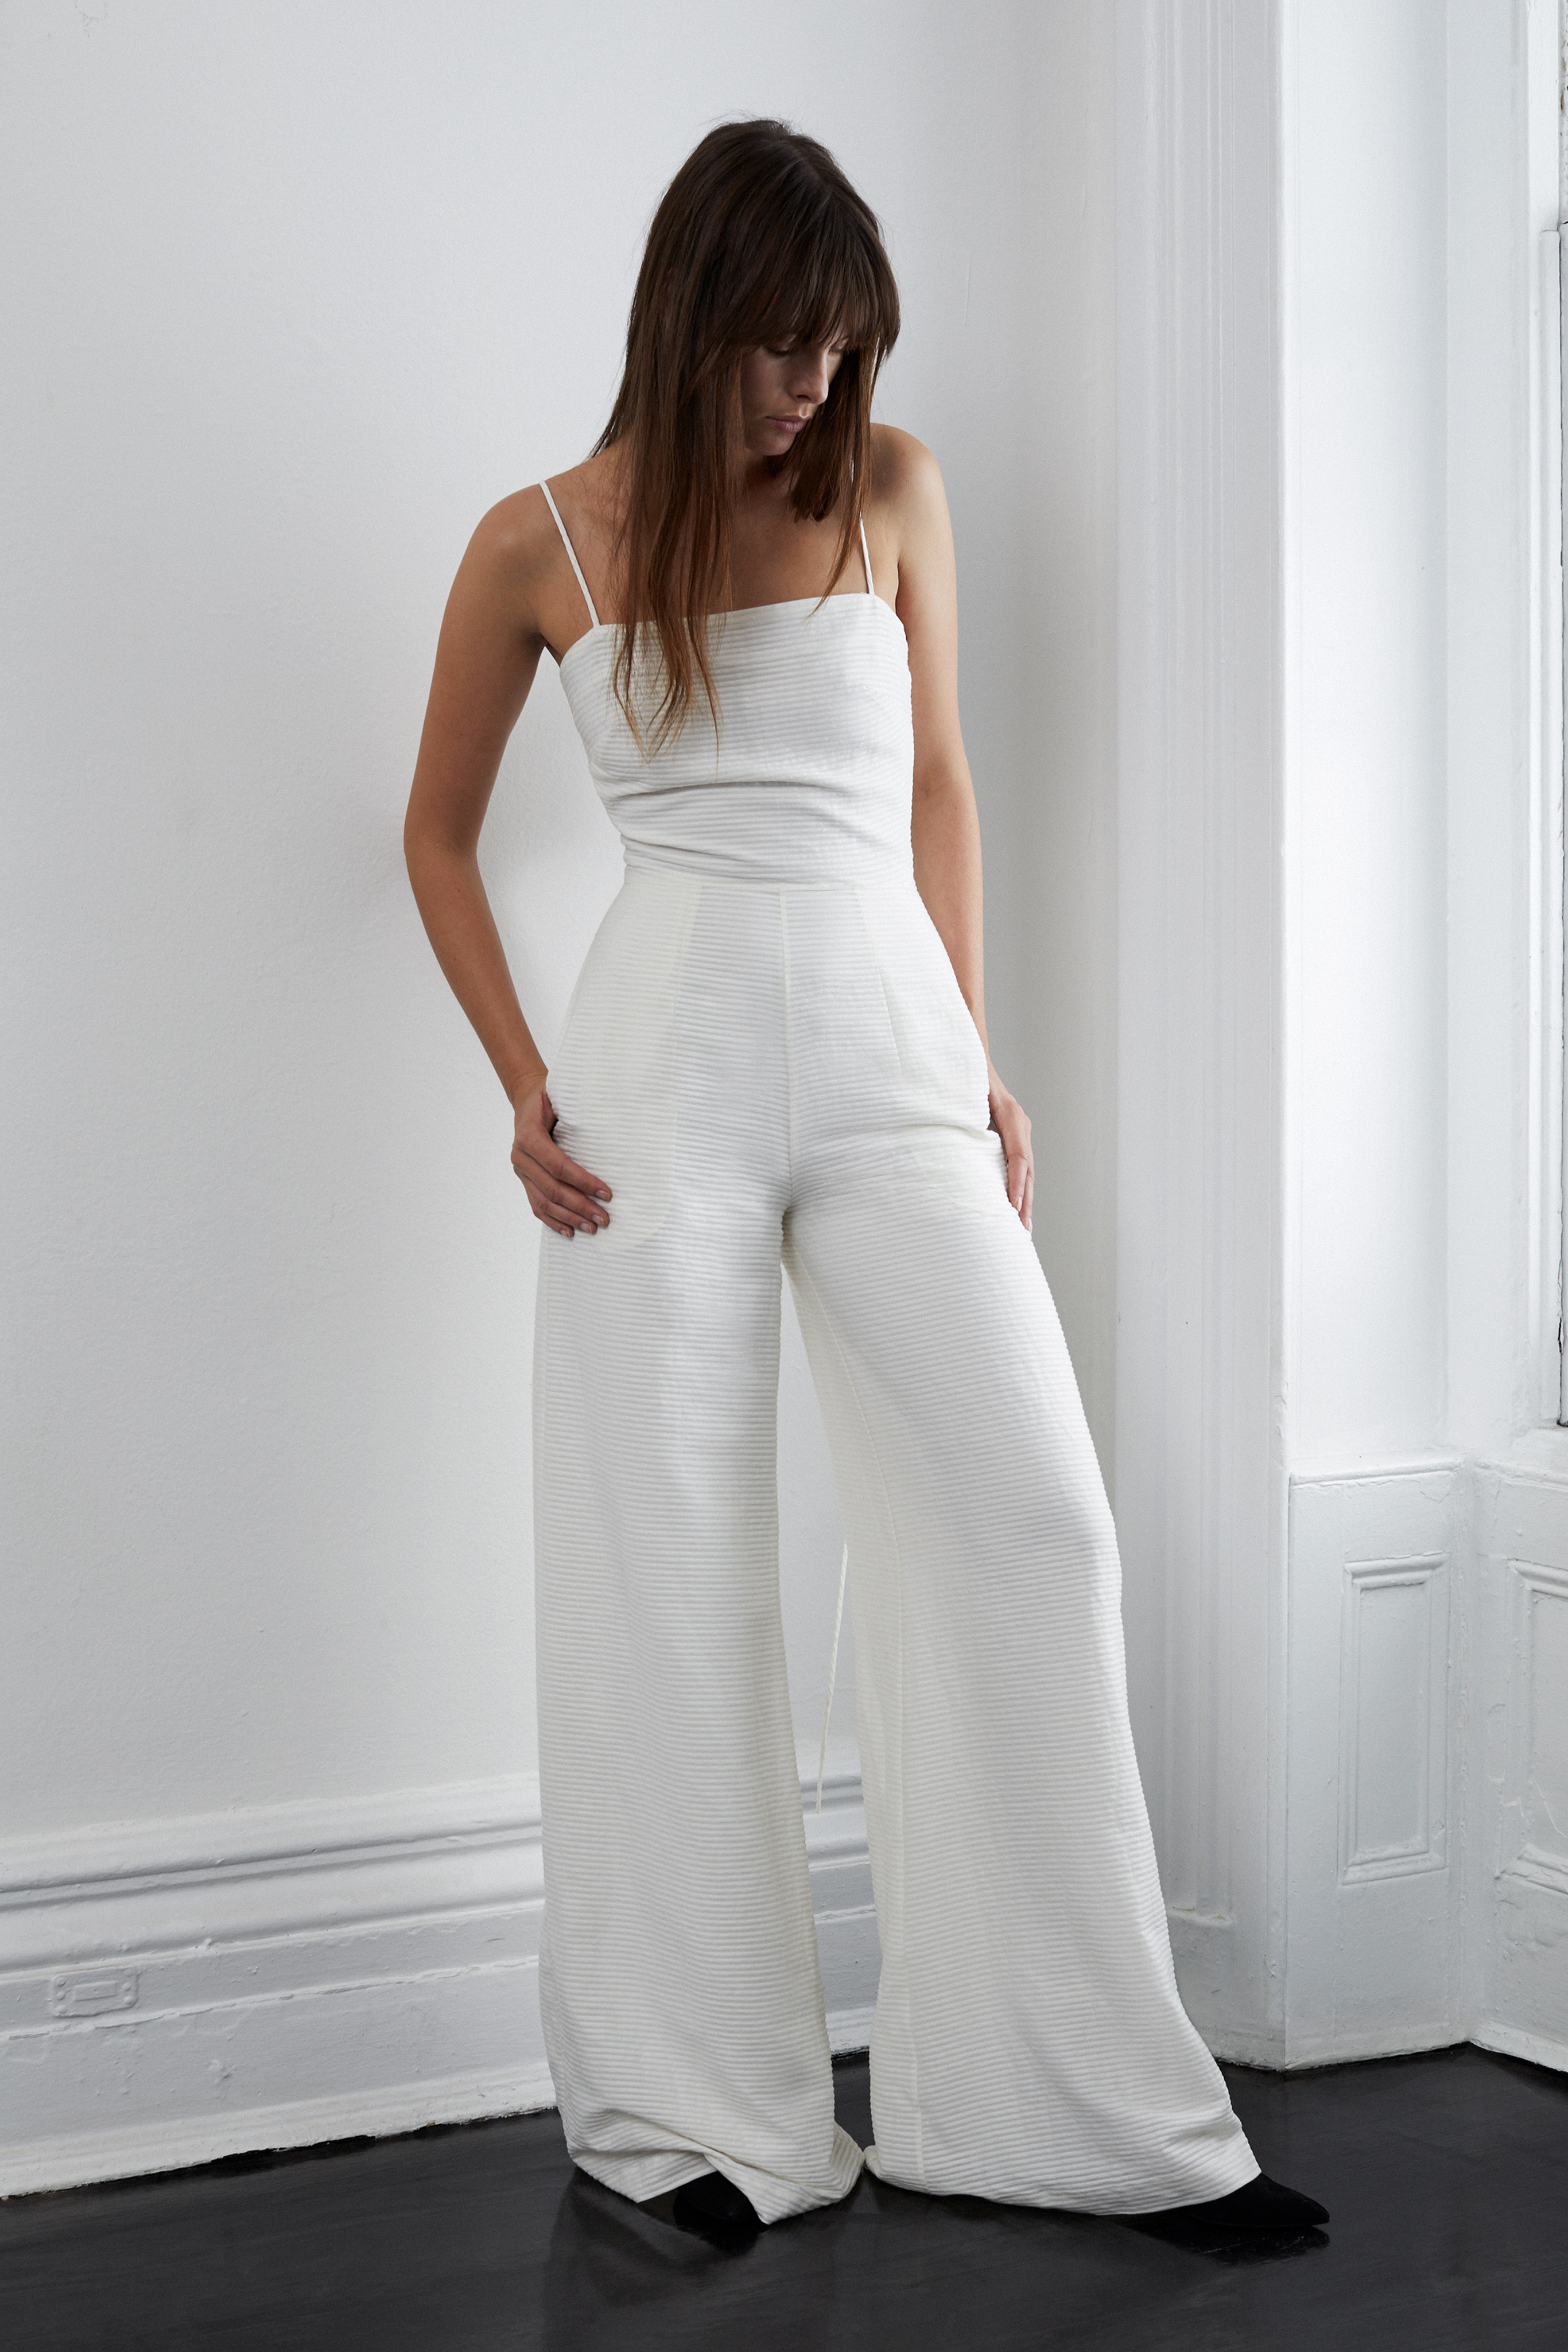 lein fall 2018 wedding dress jump suit spaghetti straps wide leg